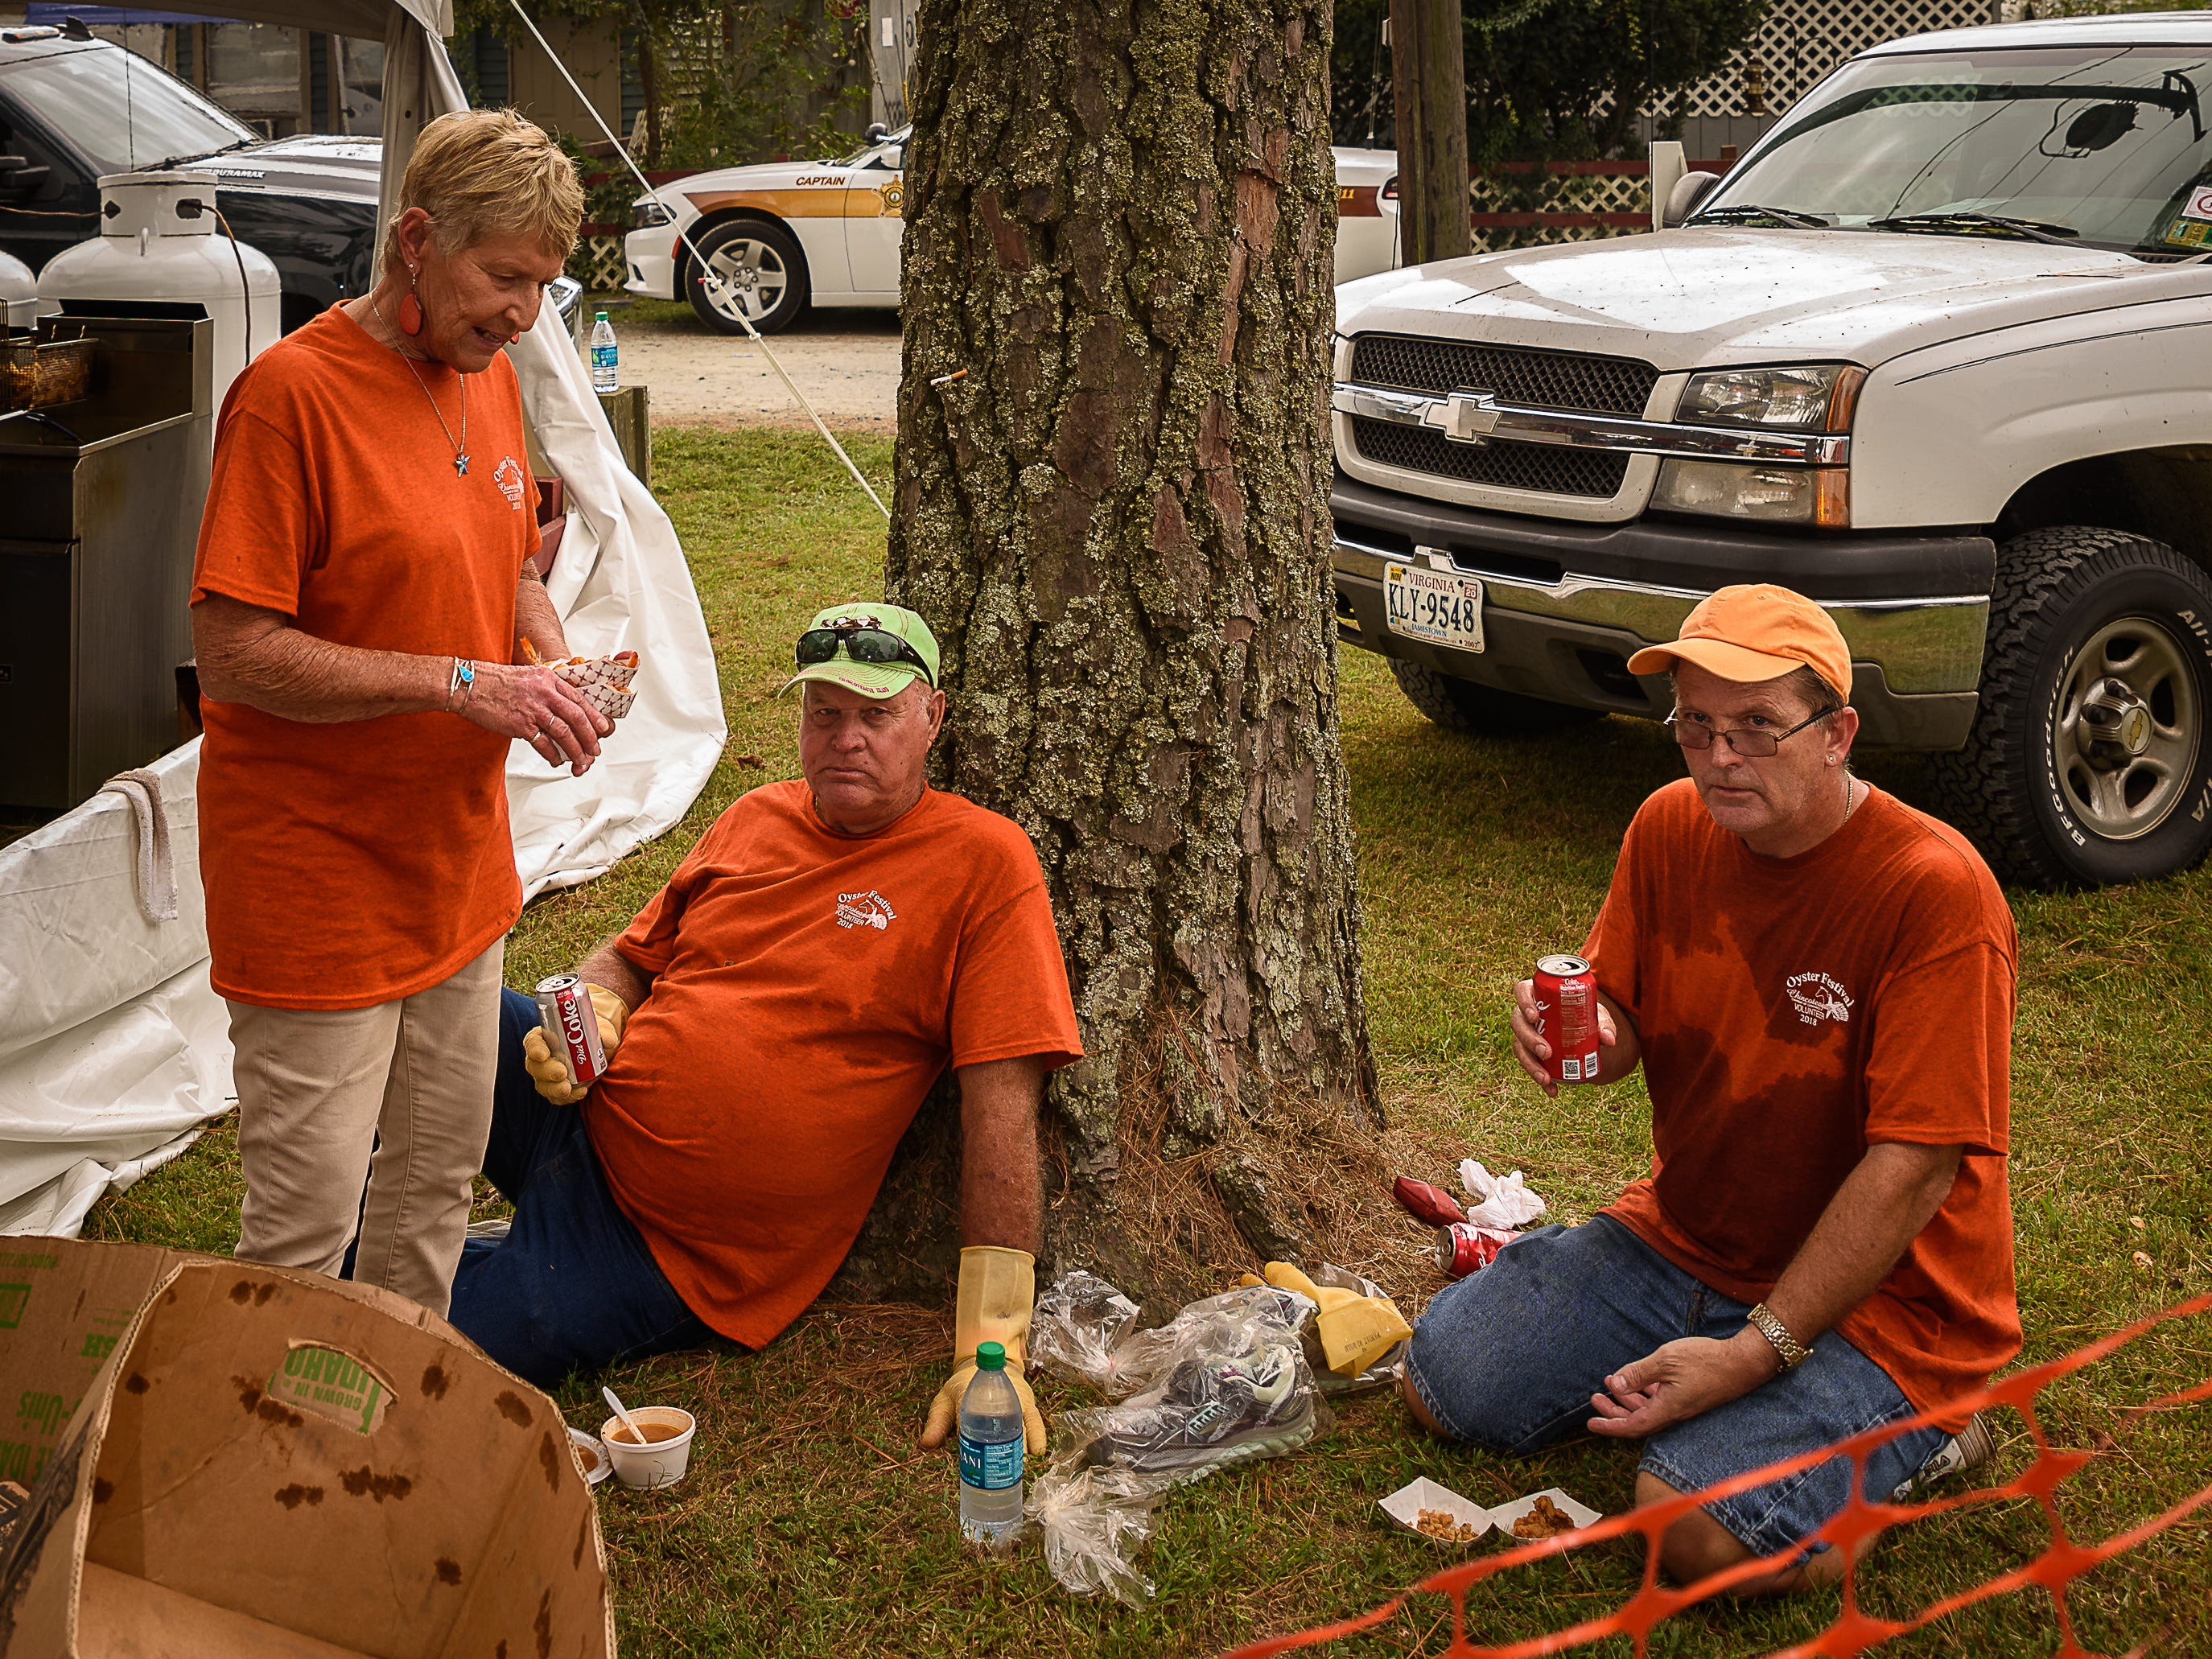 Volunteers take a break to enjoy some of the fare offered at the oyster festival.